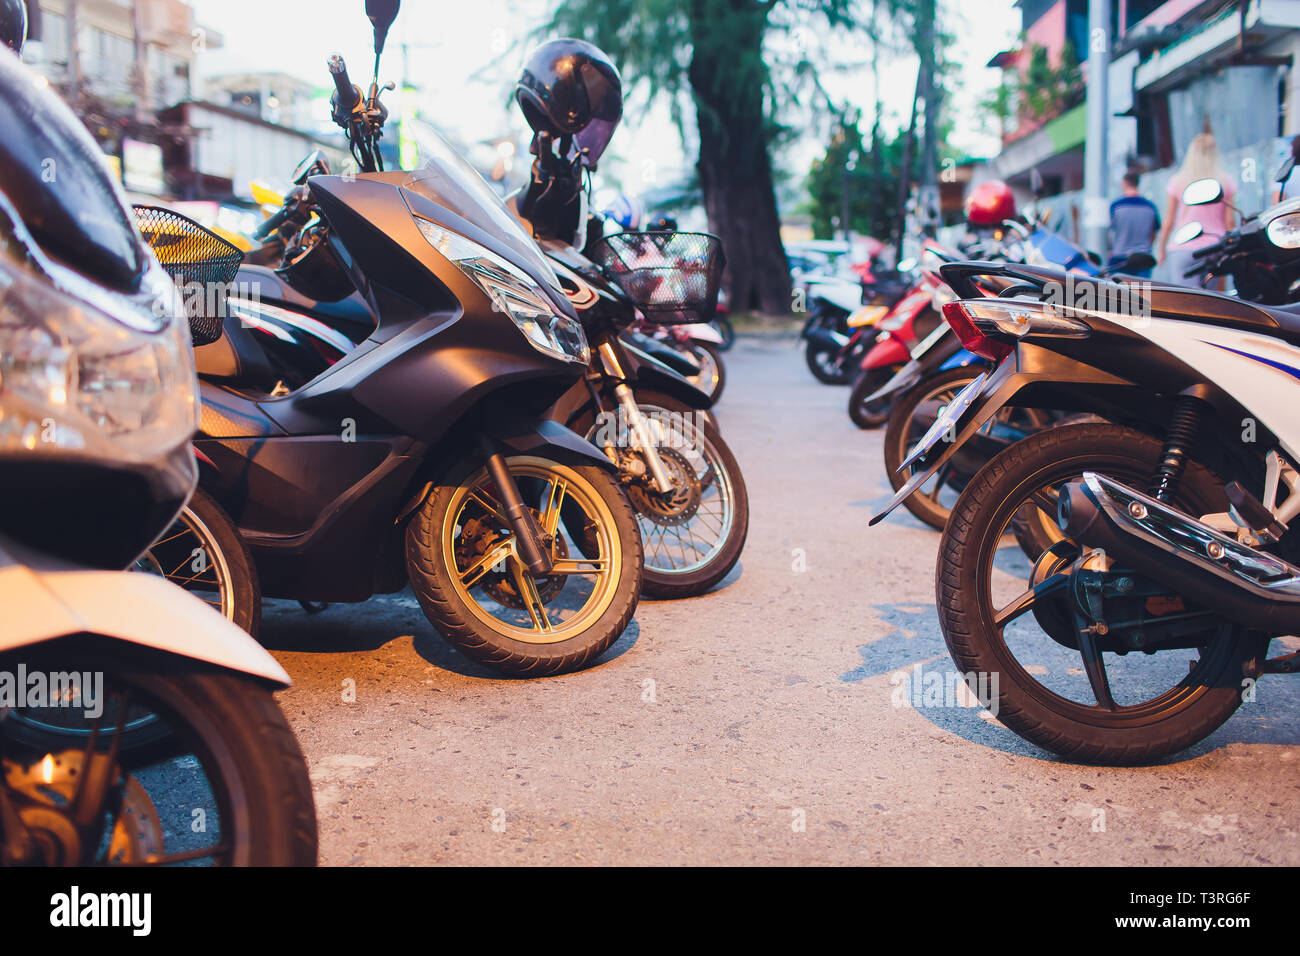 A lot of scooters in the parking, background. Mopeds are on the street. bike for rent. - Stock Image